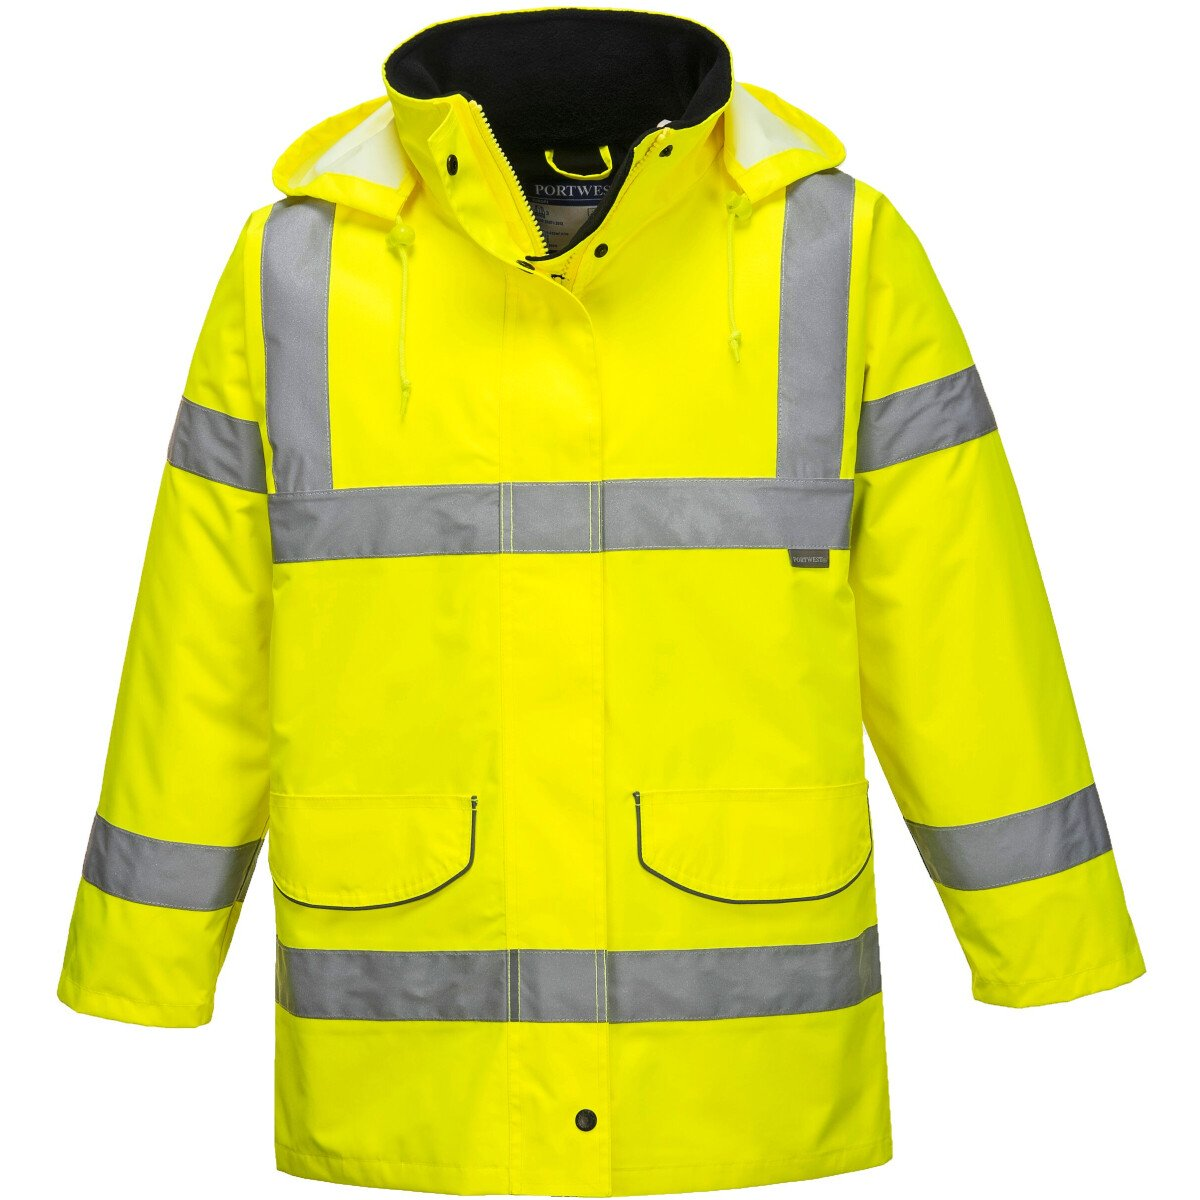 Portwest S360 Hi-Vis Ladies Traffic Jacket High Visibility - Yellow